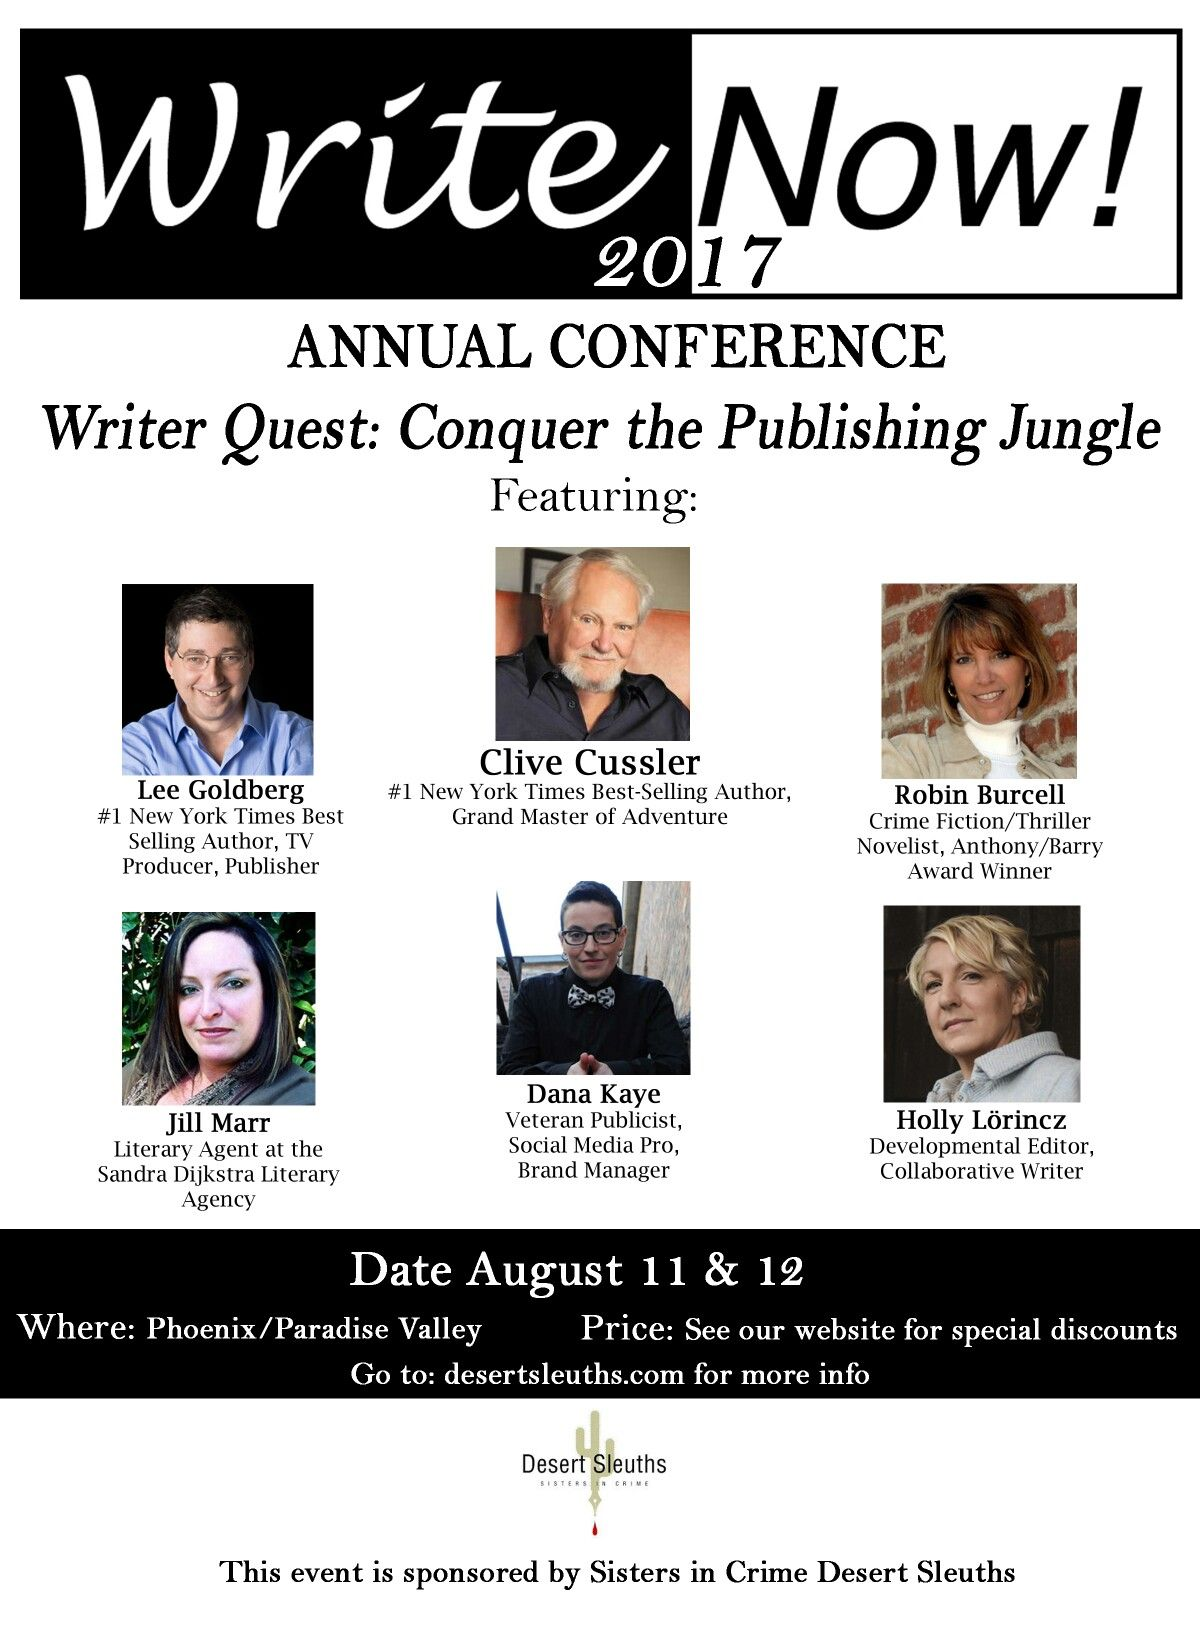 Writenow 2017 Conference Sisters In Crime Crime Fiction Literary Agency